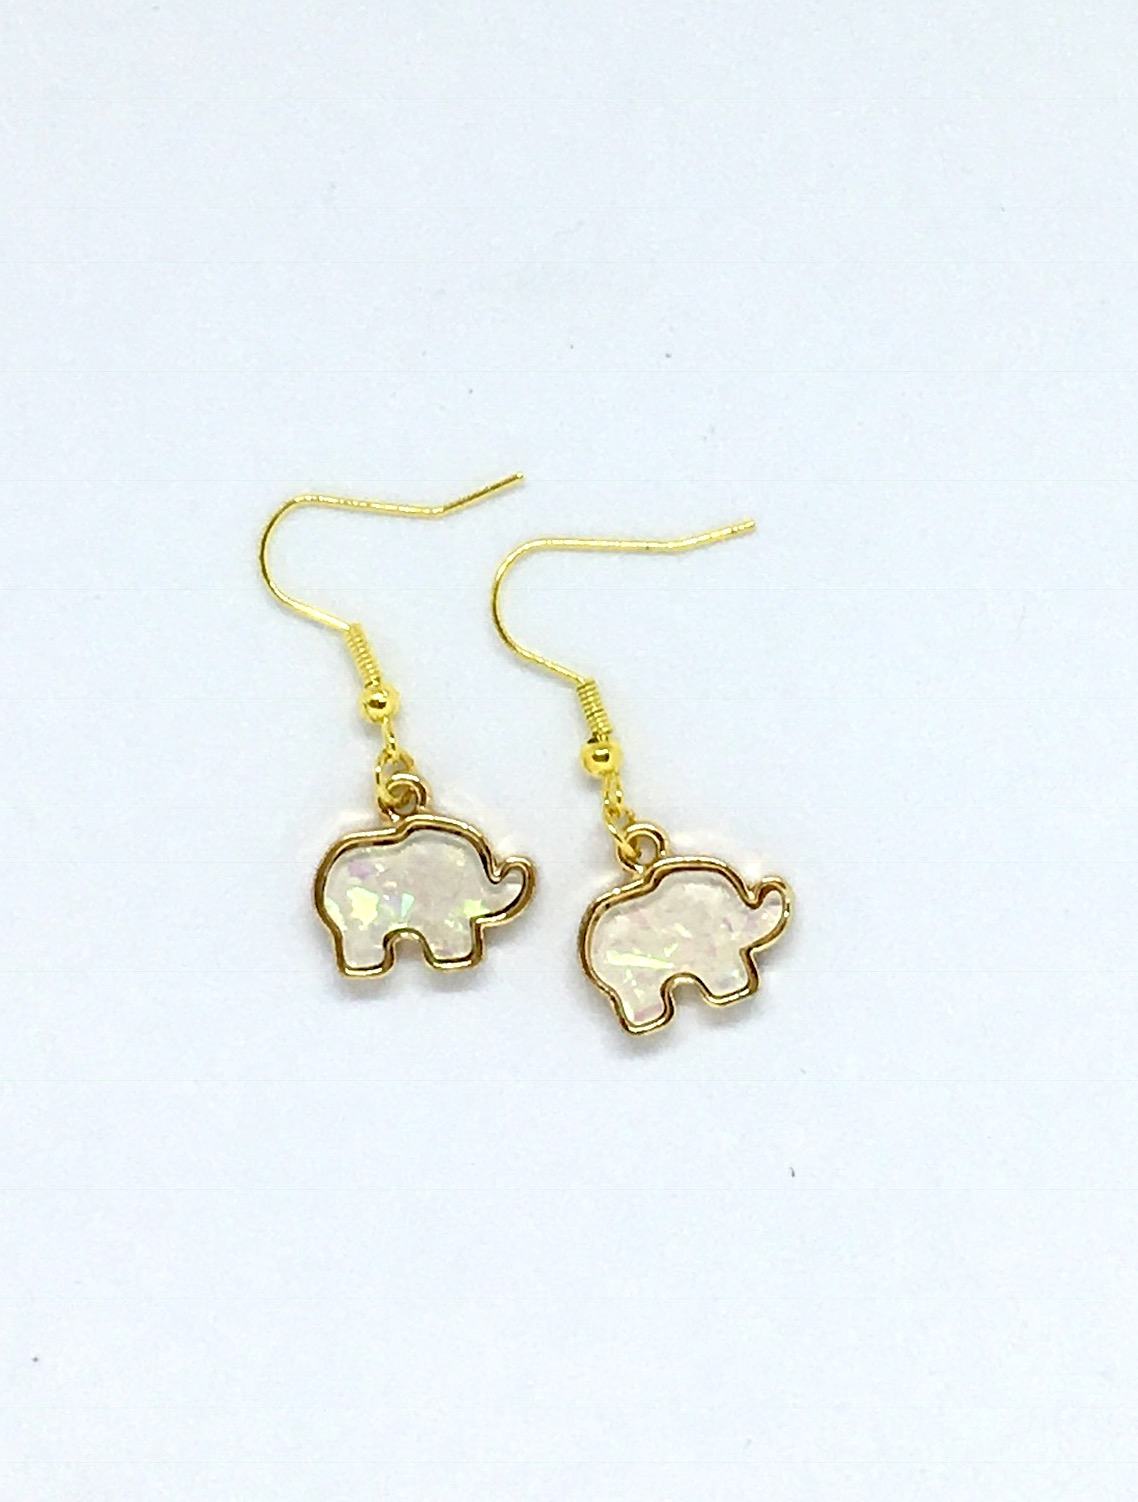 bill elephant gold bselephantstuds skinner tailor earrings printer